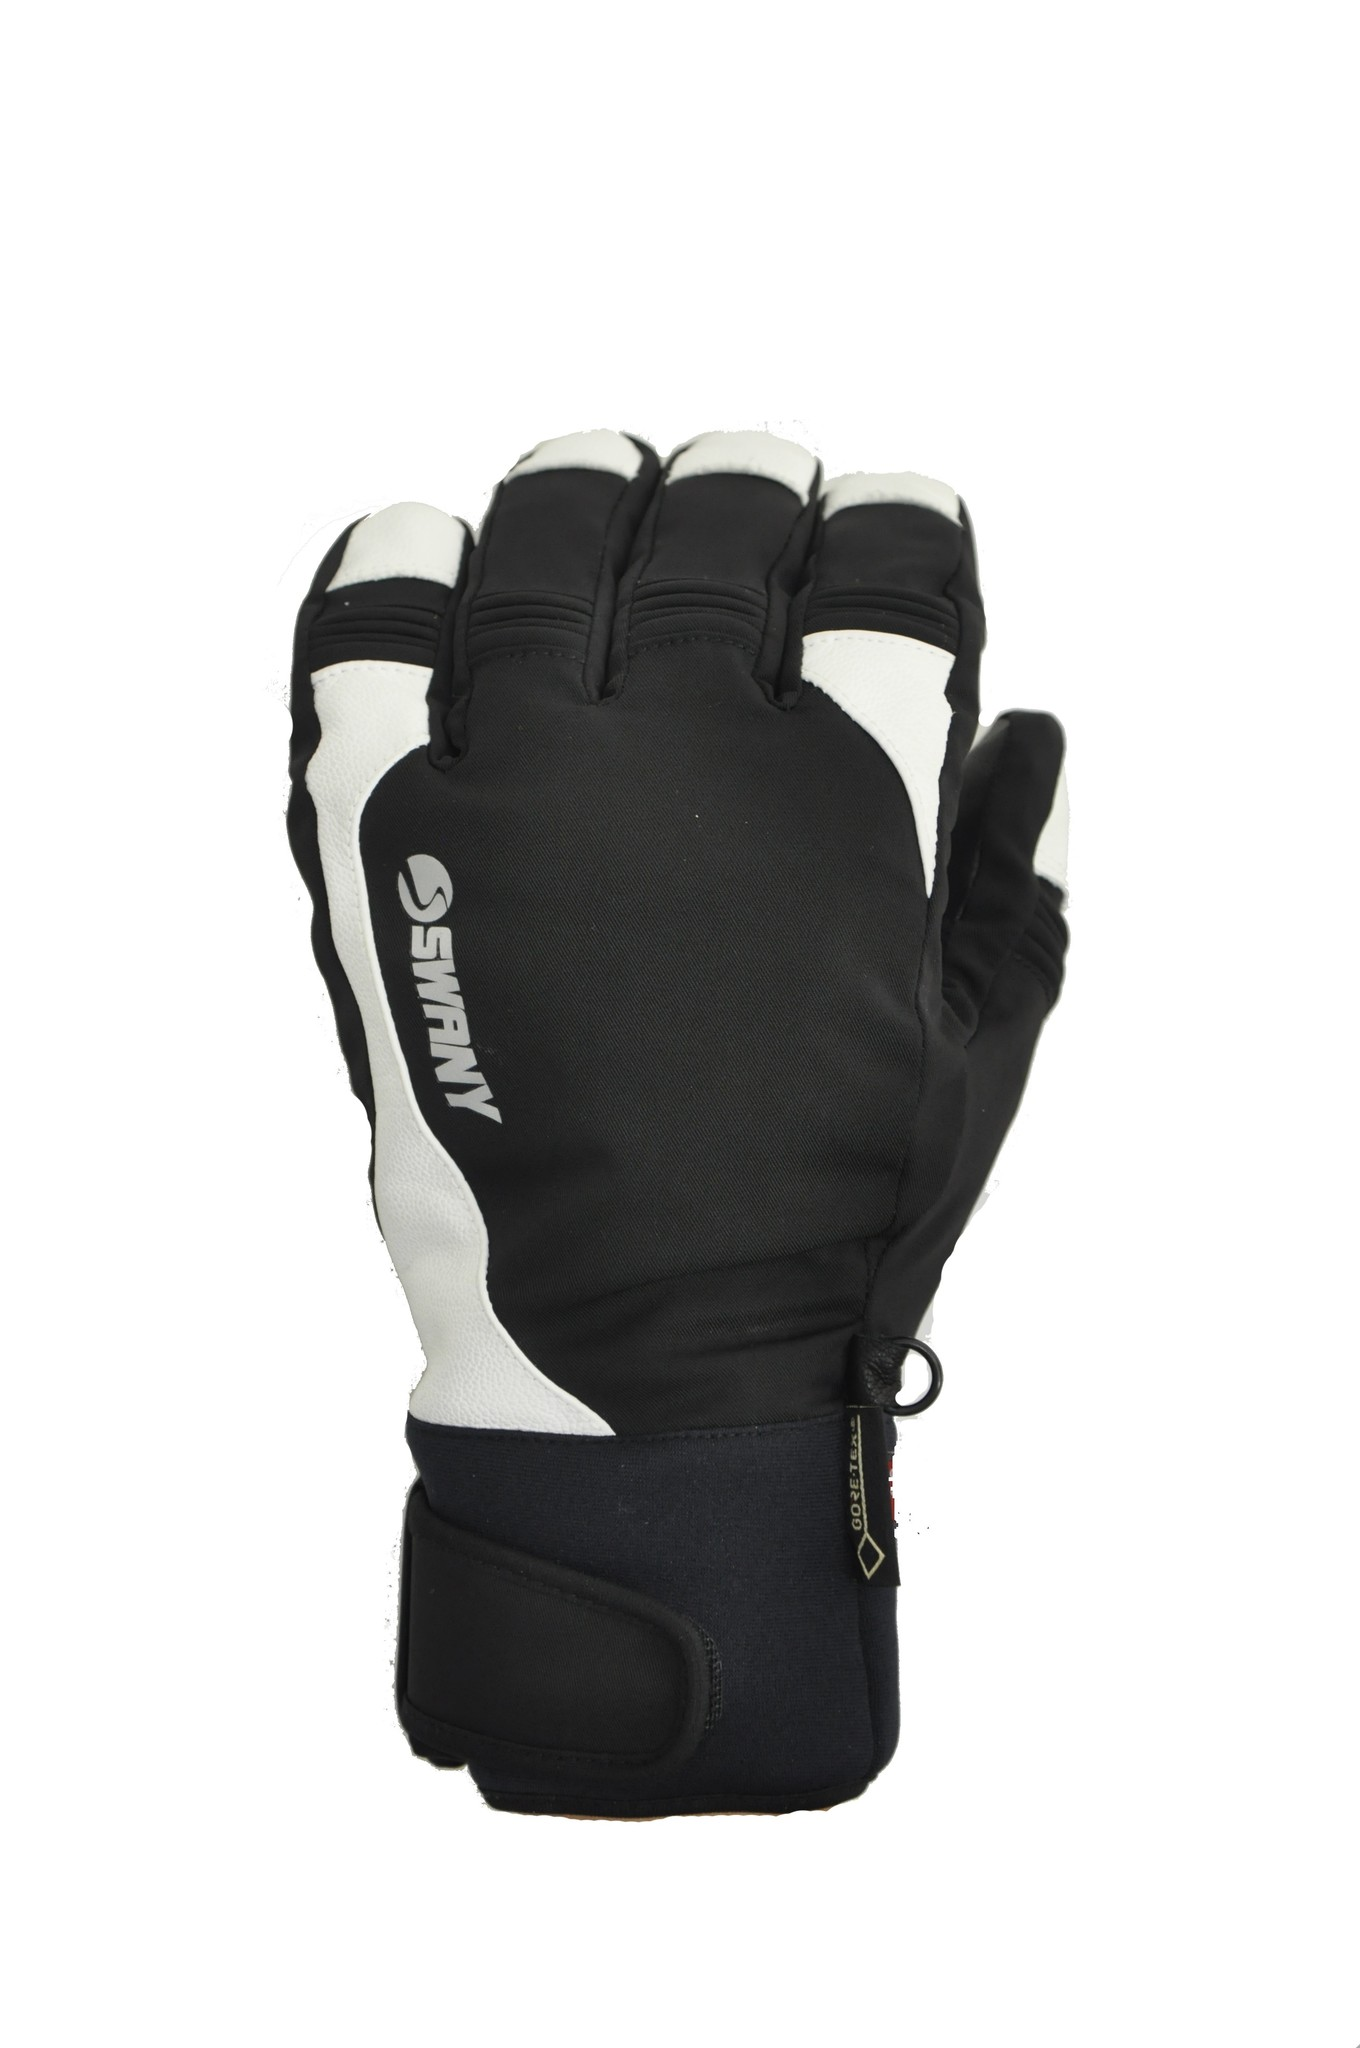 SWANY Glove Mens black white